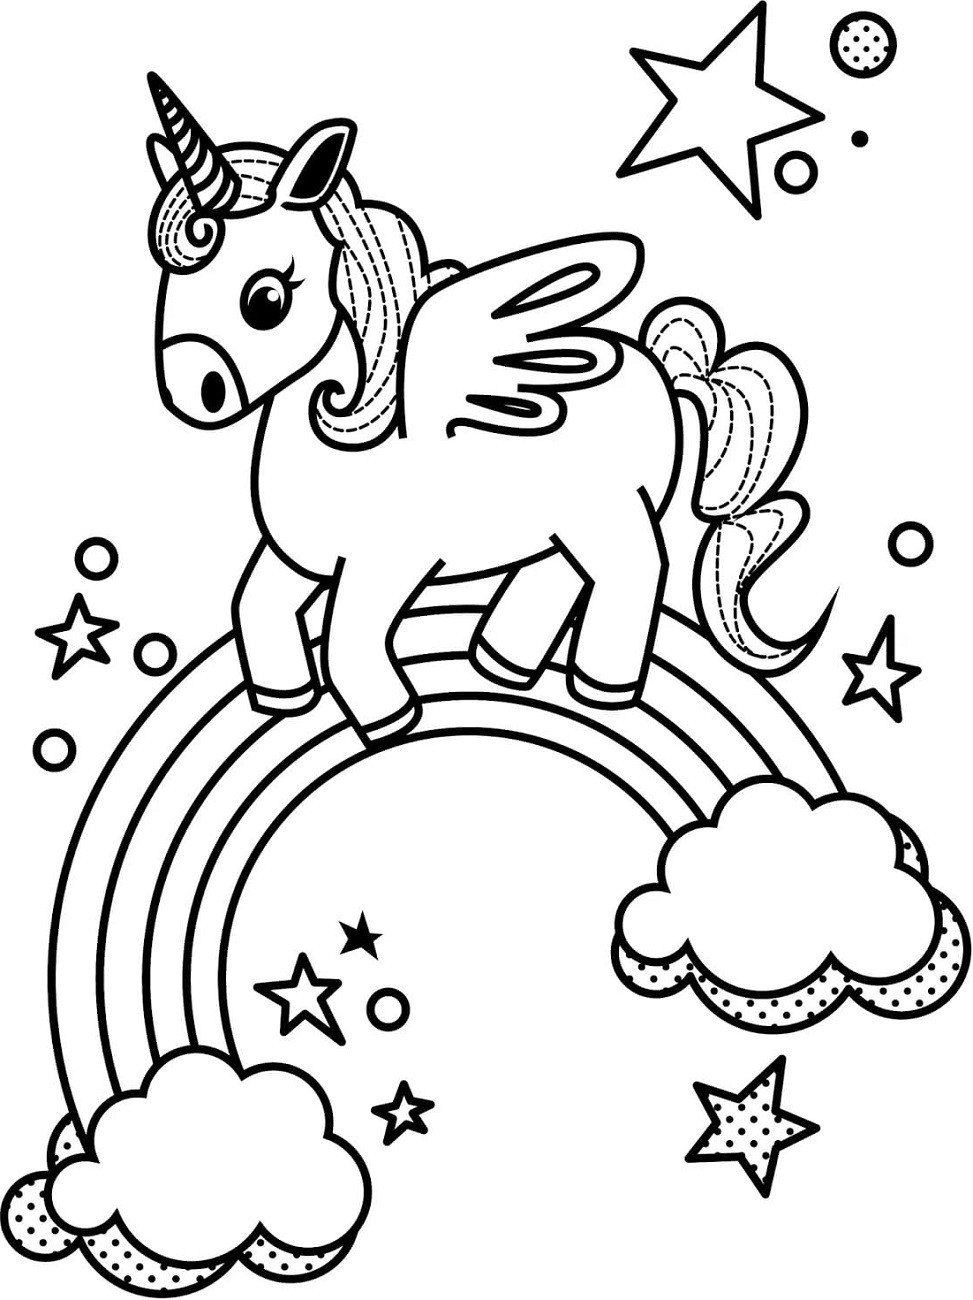 Coloring Pages Of Rainbows Little Unicorn And Rainbow Coloring Page Free Printabl Unicorn Coloring Pages Disney Princess Coloring Pages Princess Coloring Pages [ 1300 x 973 Pixel ]